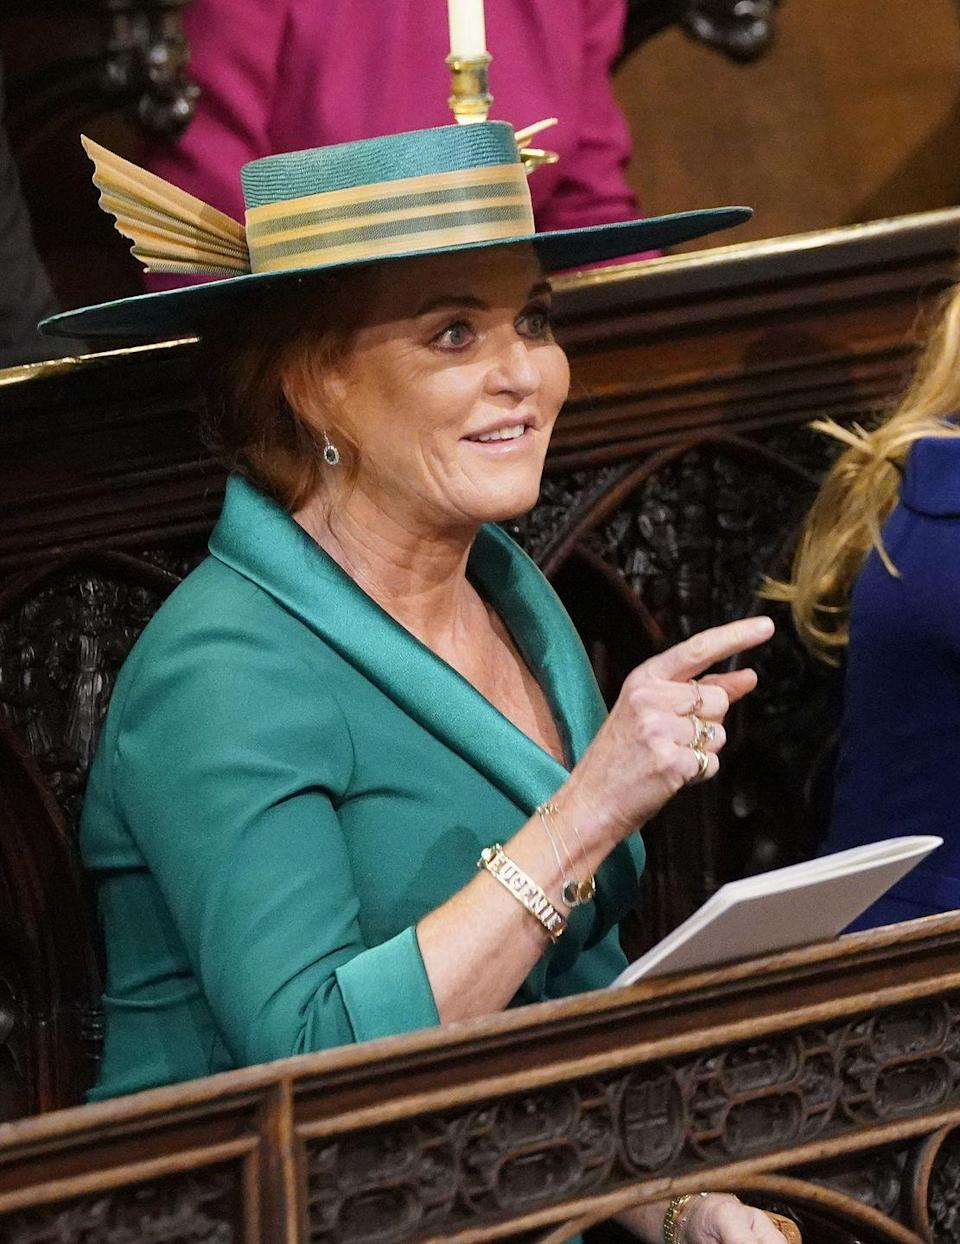 "<p>Maybe <a href=""https://www.goodhousekeeping.com/life/a23731030/sarah-ferguson-princess-eugenie-wedding-dress/"" rel=""nofollow noopener"" target=""_blank"" data-ylk=""slk:Sarah Ferguson's hat"" class=""link rapid-noclick-resp"">Sarah Ferguson's hat</a> <em>was </em>a little wild at Princes Eugenie's royal wedding, but the sweetest gesture ever was her tribute to her two daughters, Princesses Beatrice and Eugenie. The mother of the bride wore a <a href=""https://www.goodhousekeeping.com/beauty/fashion/a23890165/sarah-ferguson-eugenie-bracelet-jewelry-royal-wedding/"" rel=""nofollow noopener"" target=""_blank"" data-ylk=""slk:gorgeous bangle with her daughter's names"" class=""link rapid-noclick-resp"">gorgeous bangle with her daughter's names</a> written in diamonds. Dare we say it? Who cares what else you're wearing when you've got that kind of Mom bling on your wrist?</p>"